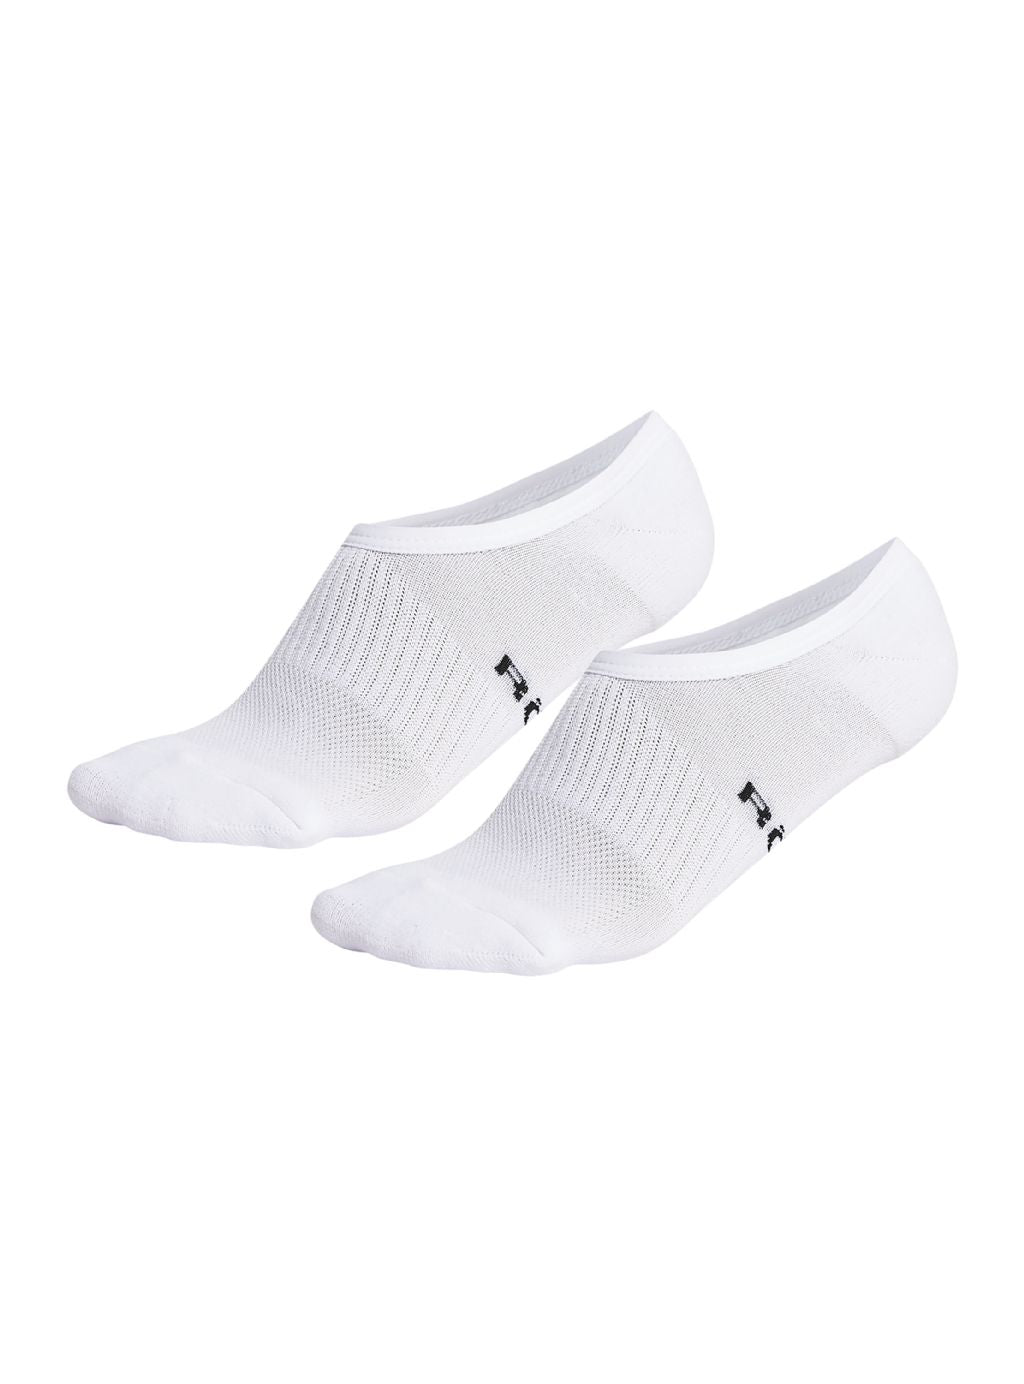 ROHNISCH Invisible Sock 2-Pack White